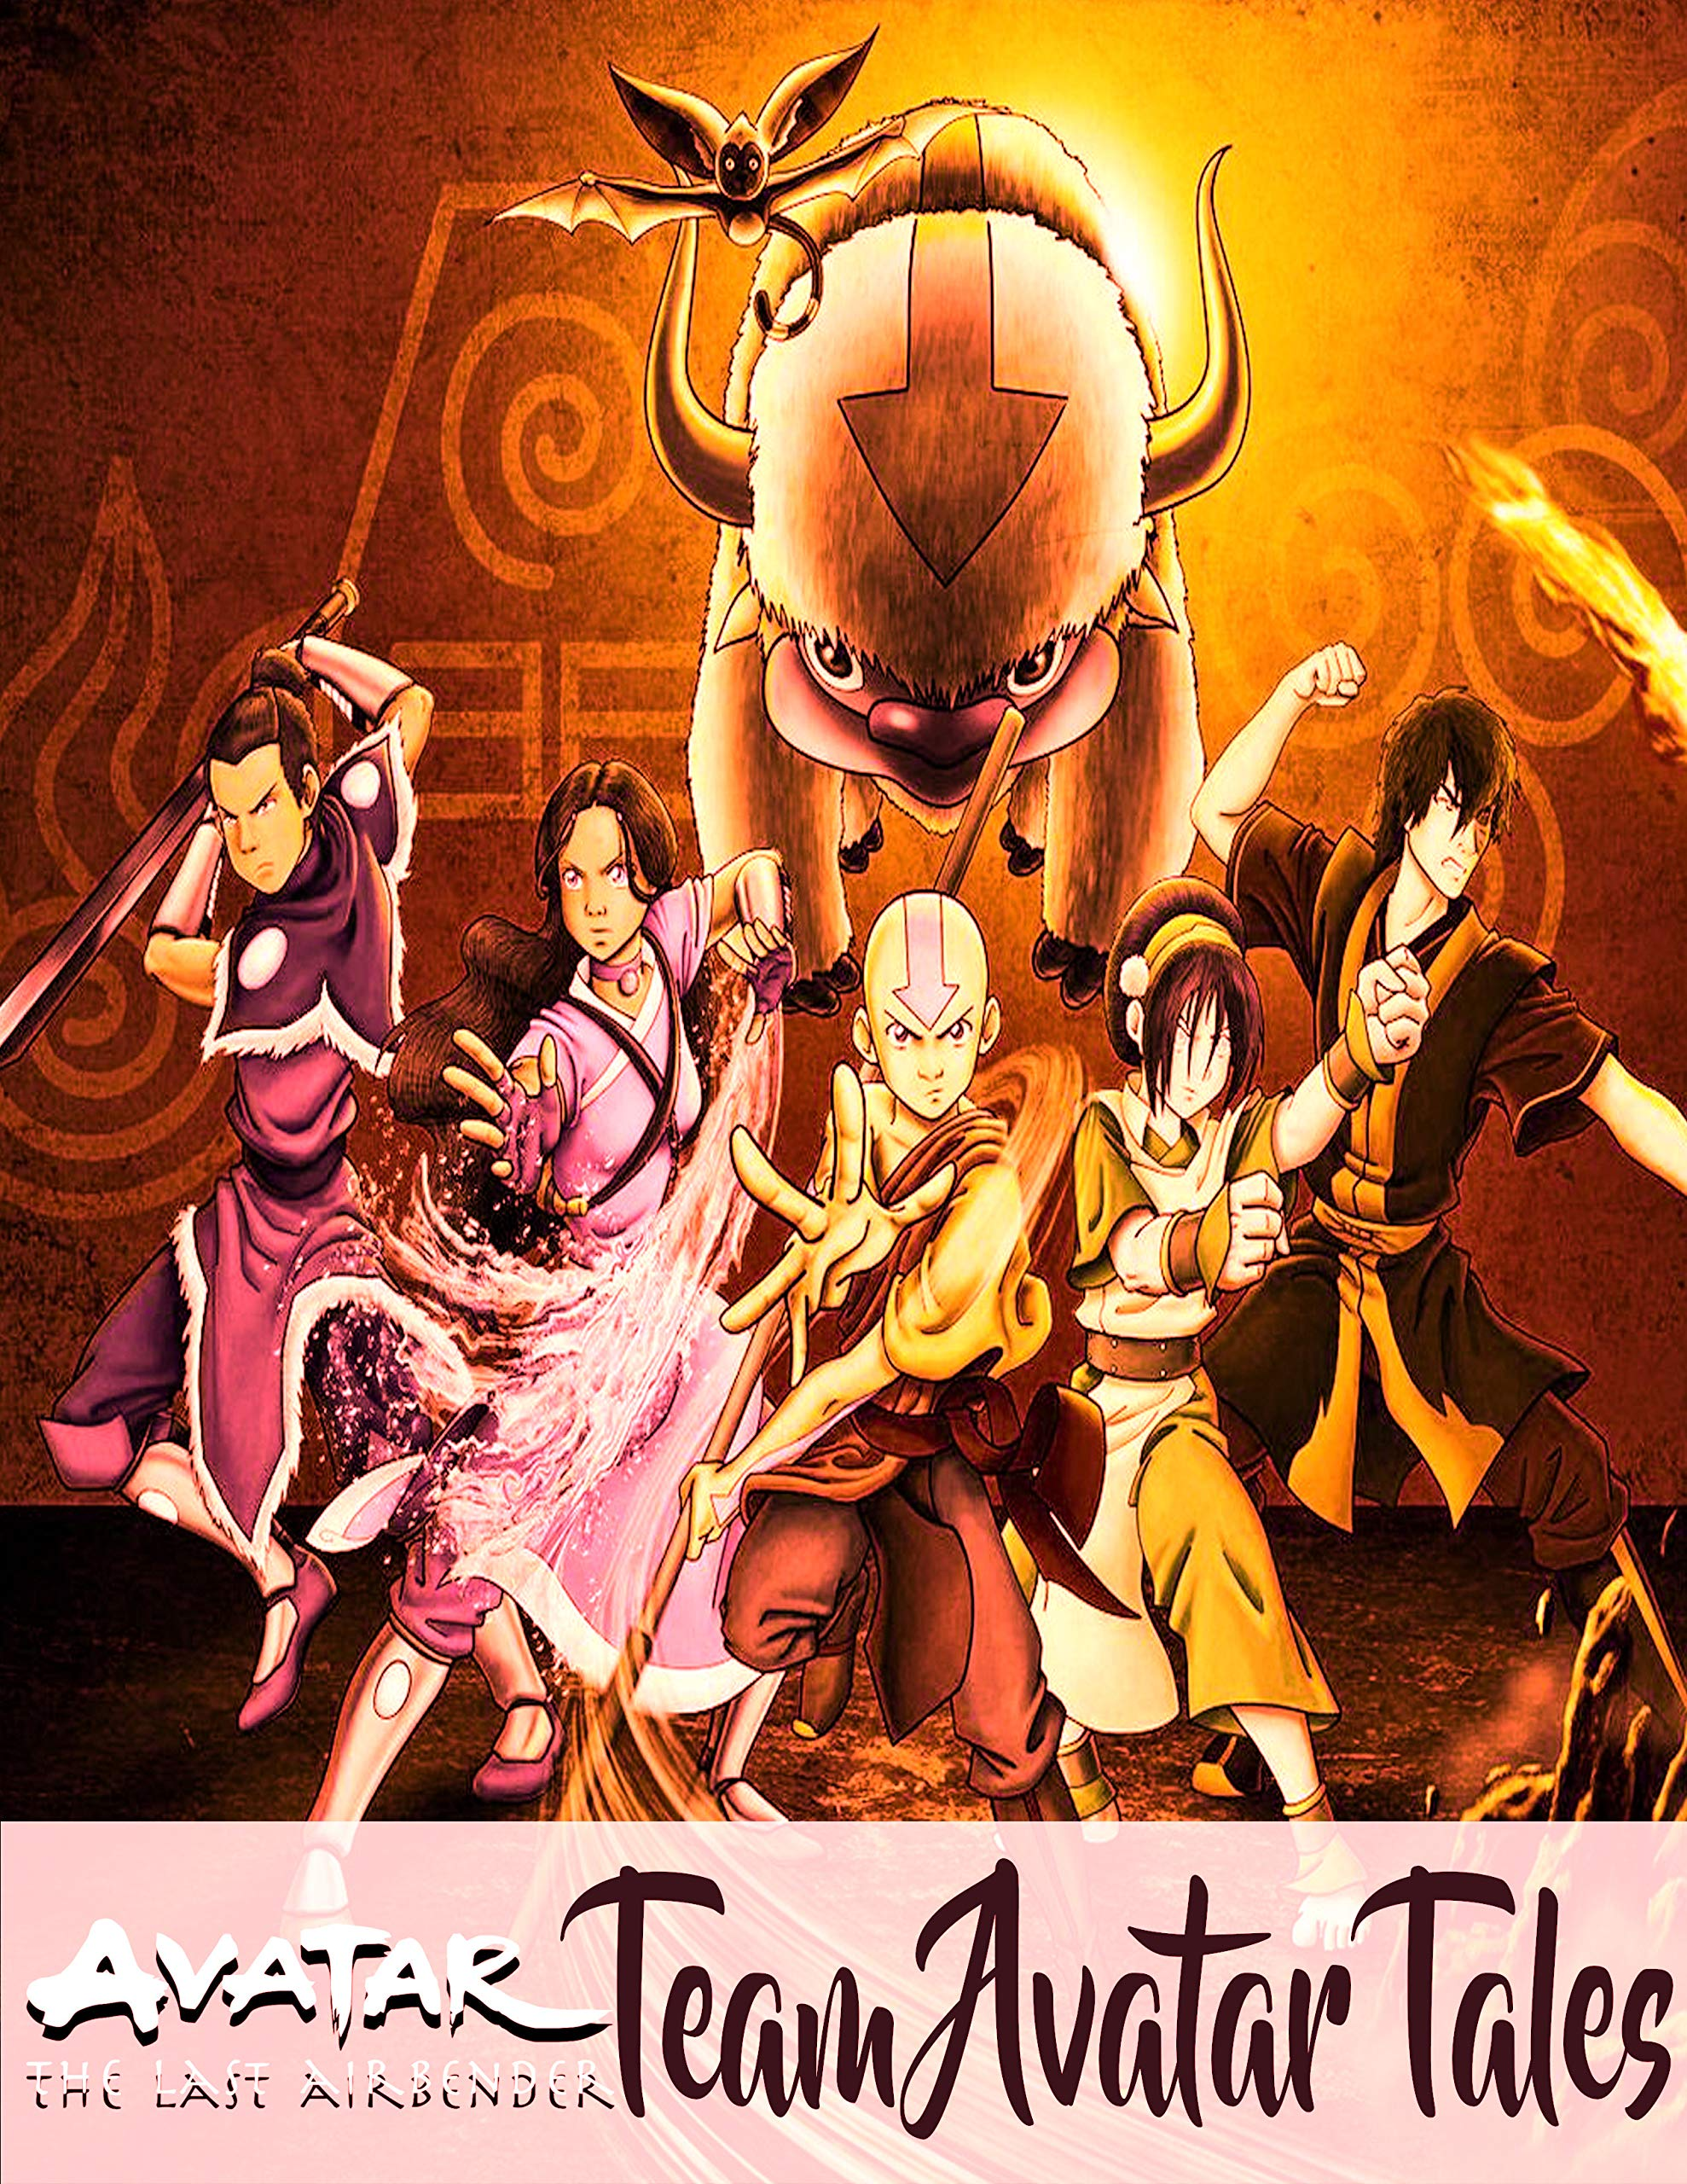 Avatar: The Last Airbender Team Avatar Tales Nickelodeon Avatar American animated fantasy action-adventure television series comic